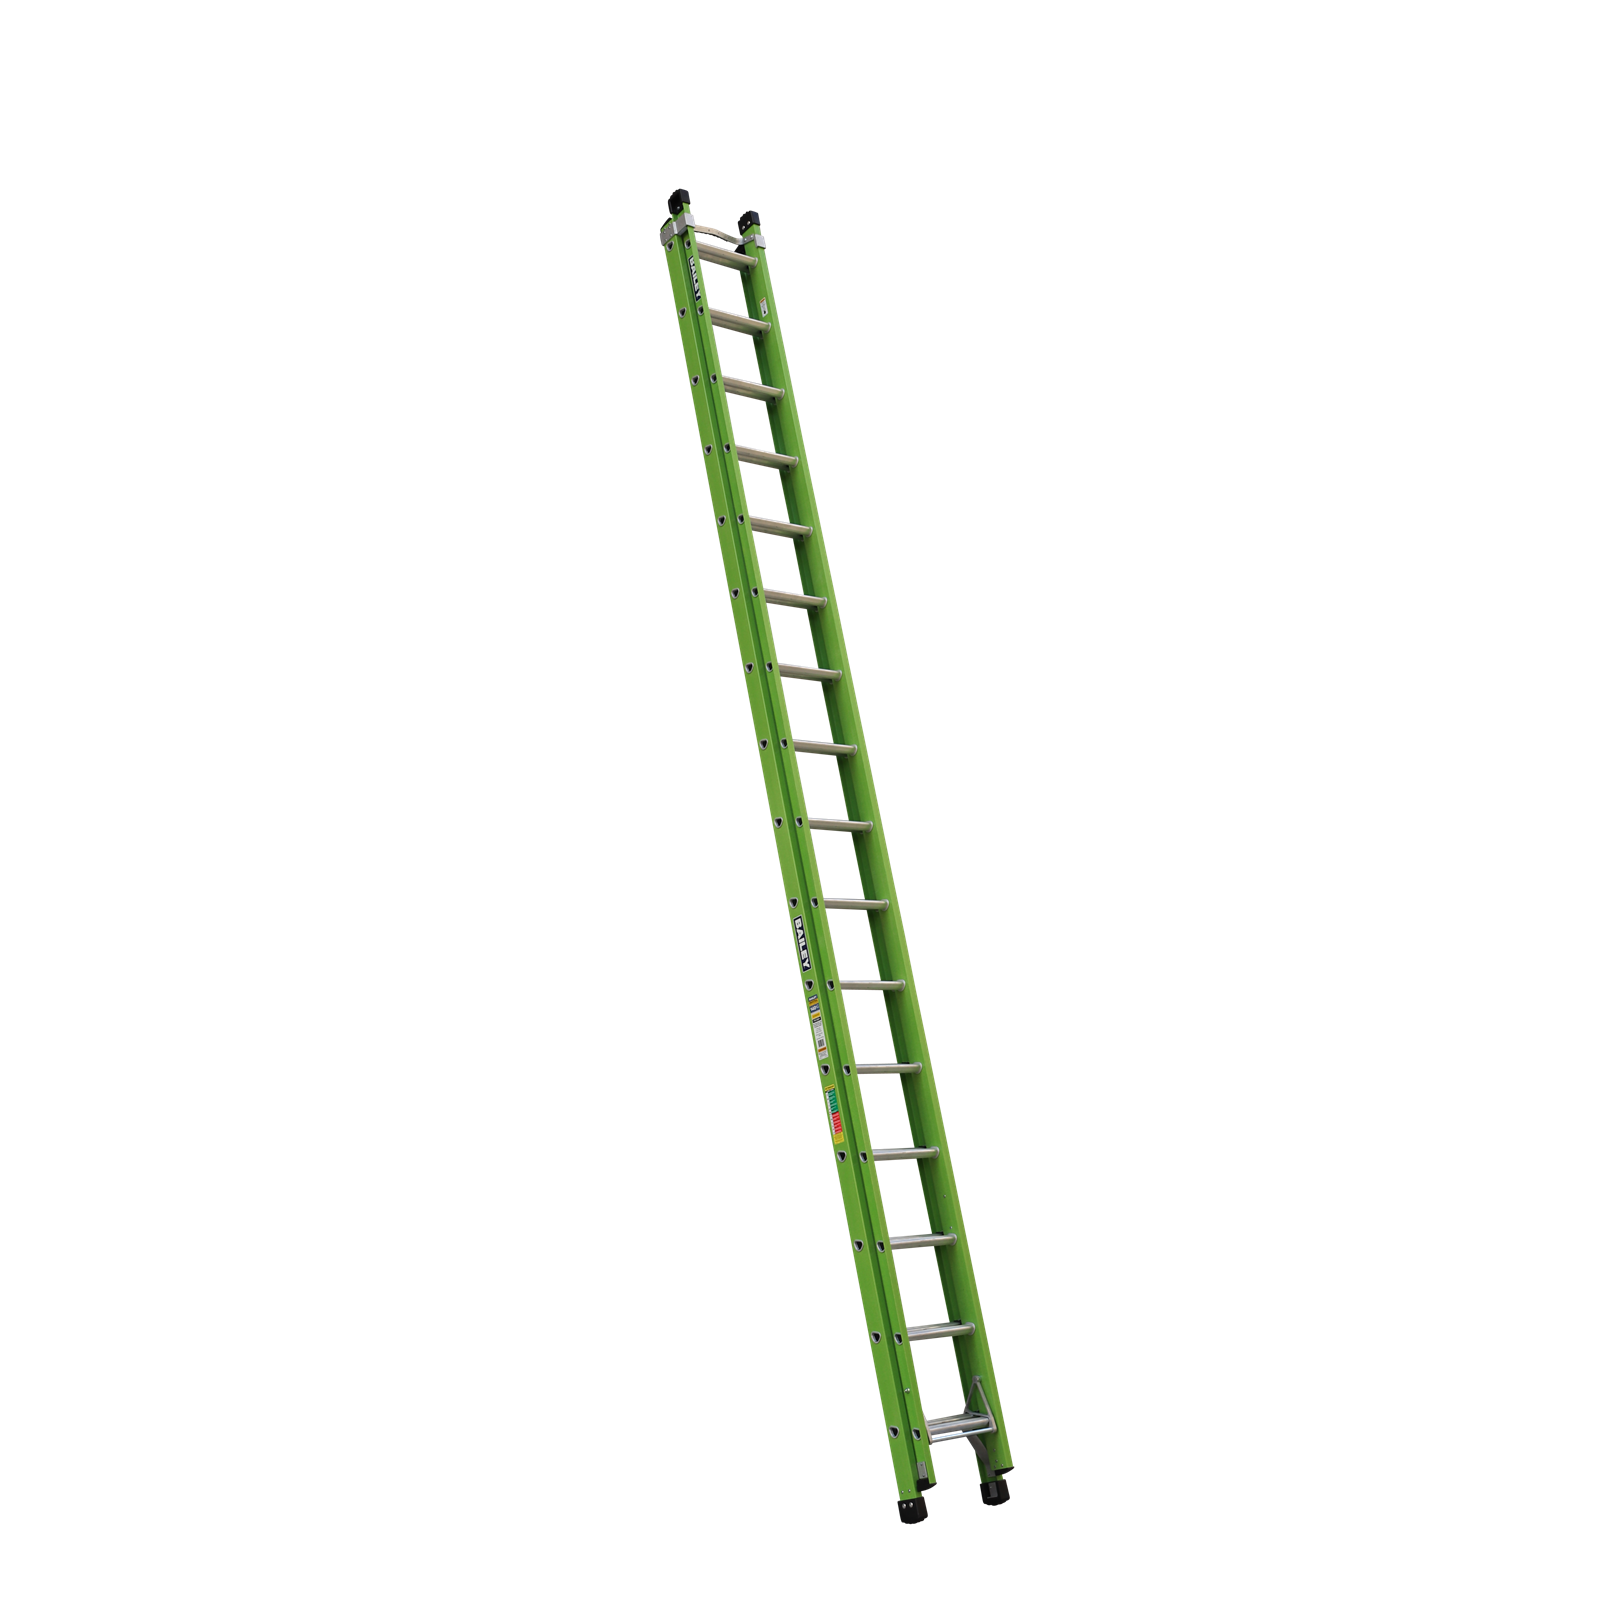 Bailey 5.0-9.0m 140kg Industrial Rated Pro 16 Rung Fibreglass Extension Ladder